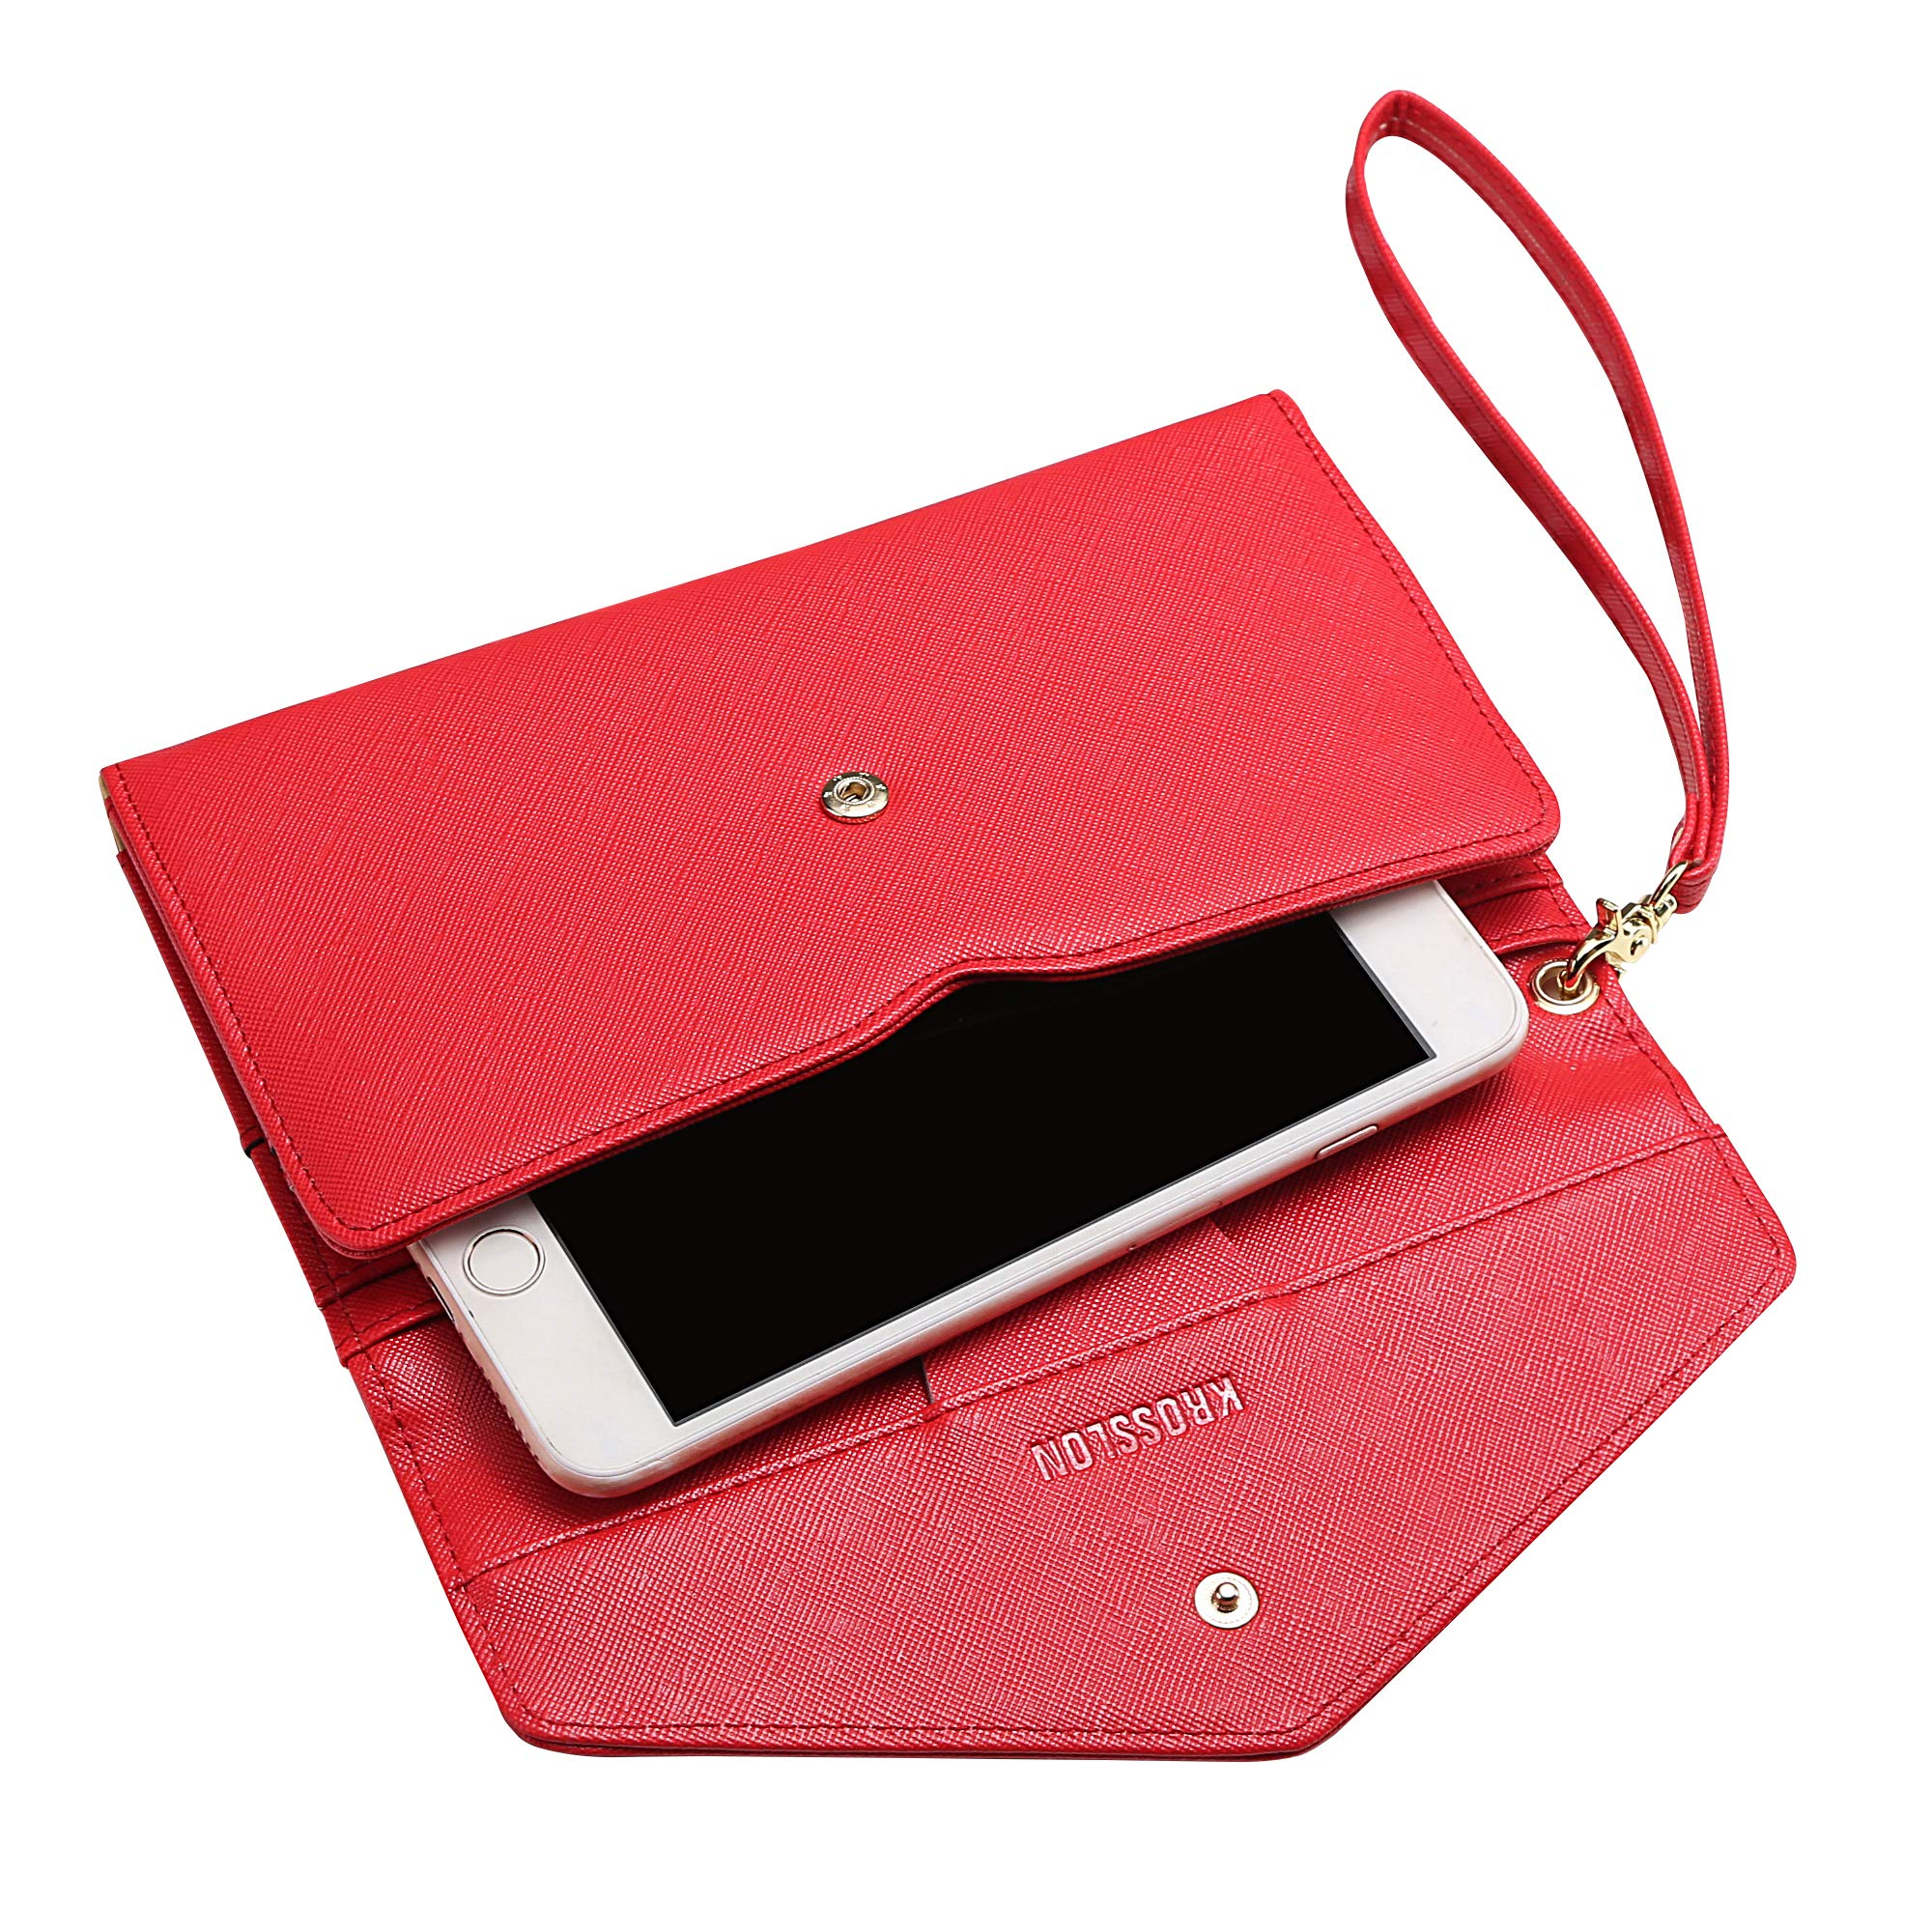 Krosslon Travel Passport Wallet for Women Rfid Wristlet Slim Family Document Holder, 11# Agate Red by KROSSLON (Image #6)